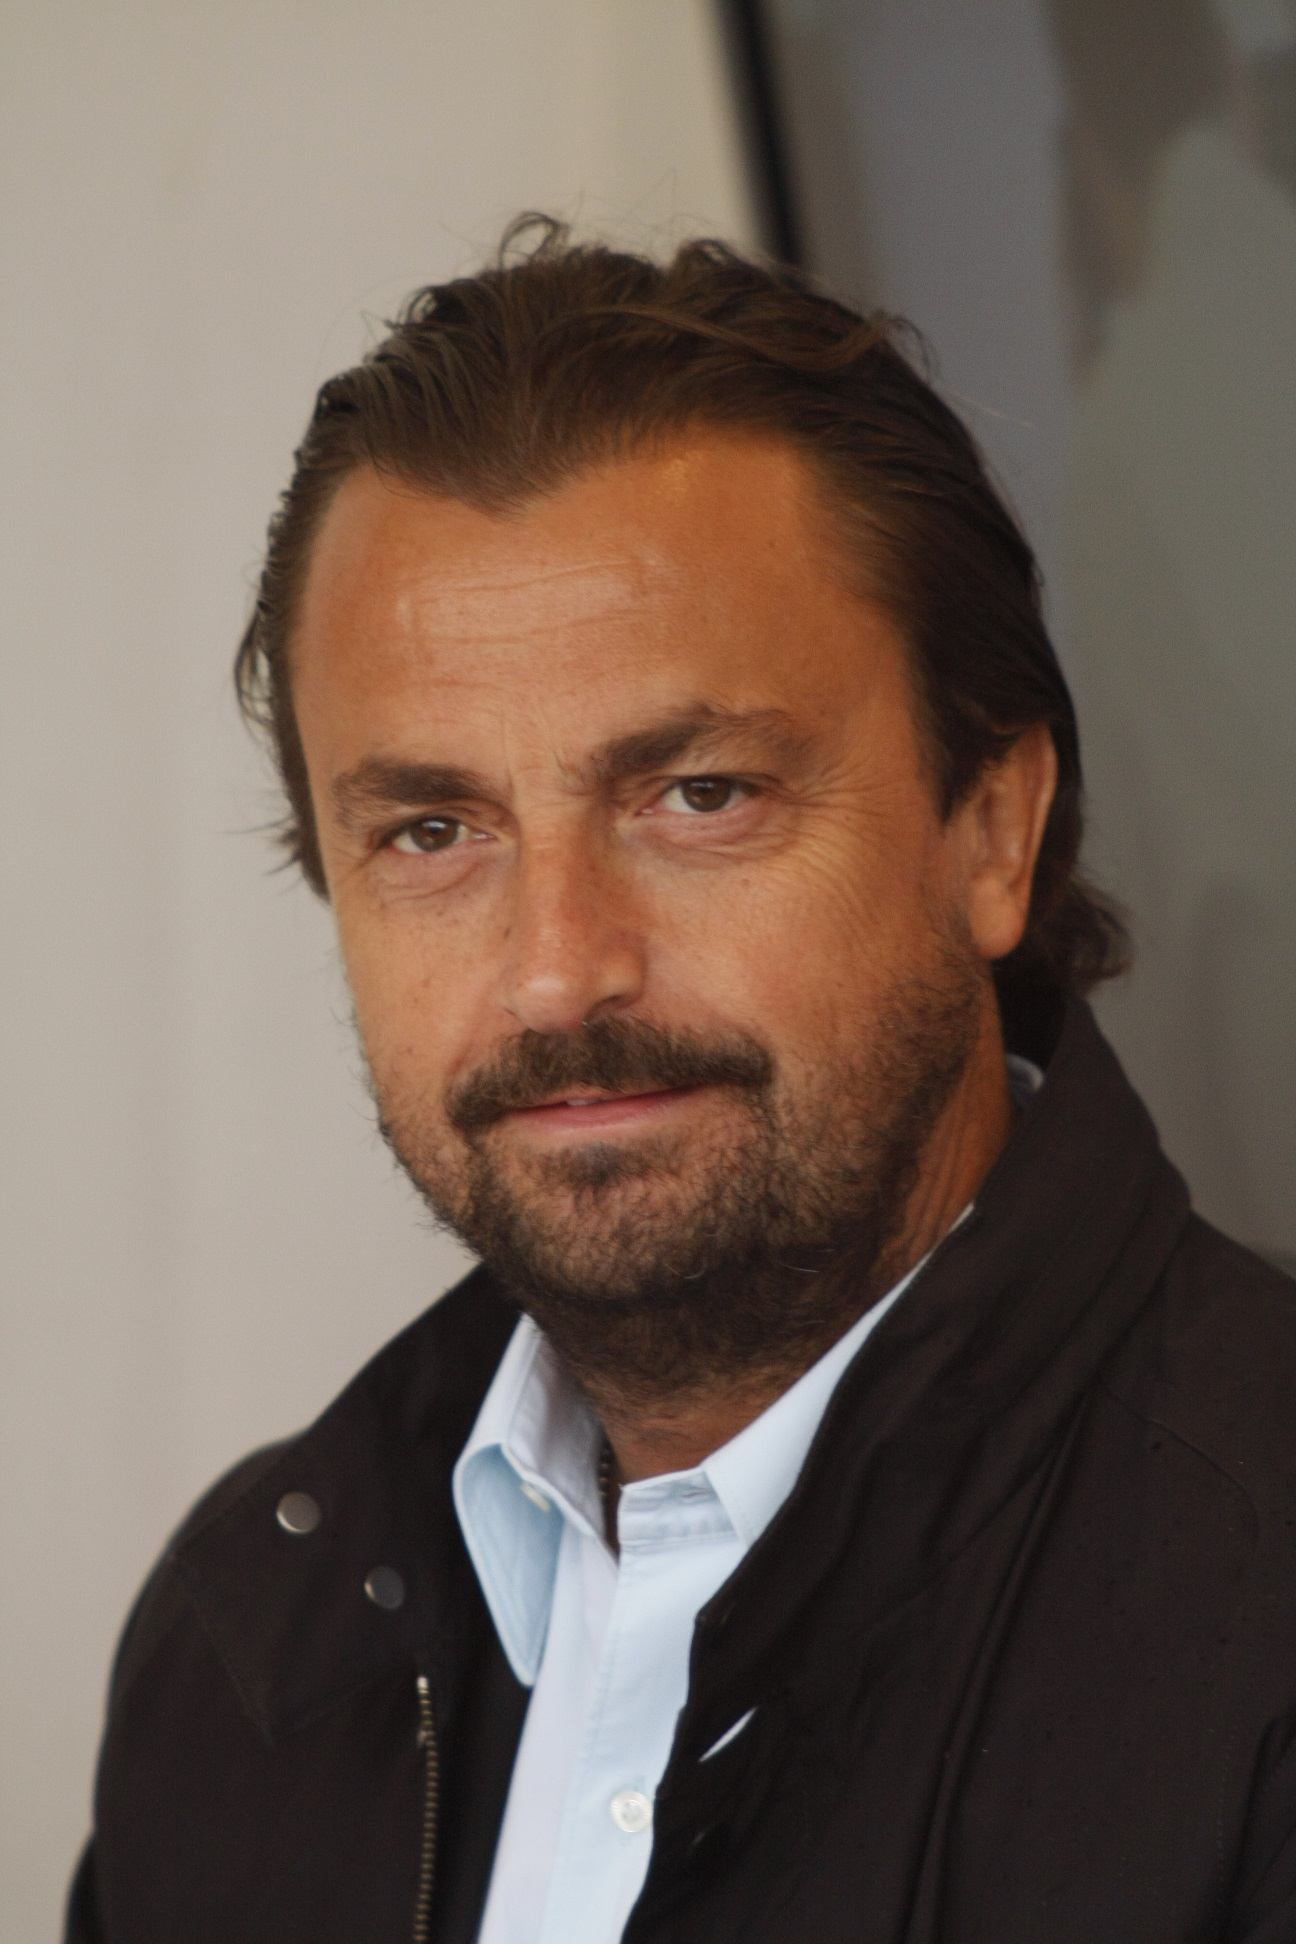 Leconte, en 2011 (WIKIPEDIA).